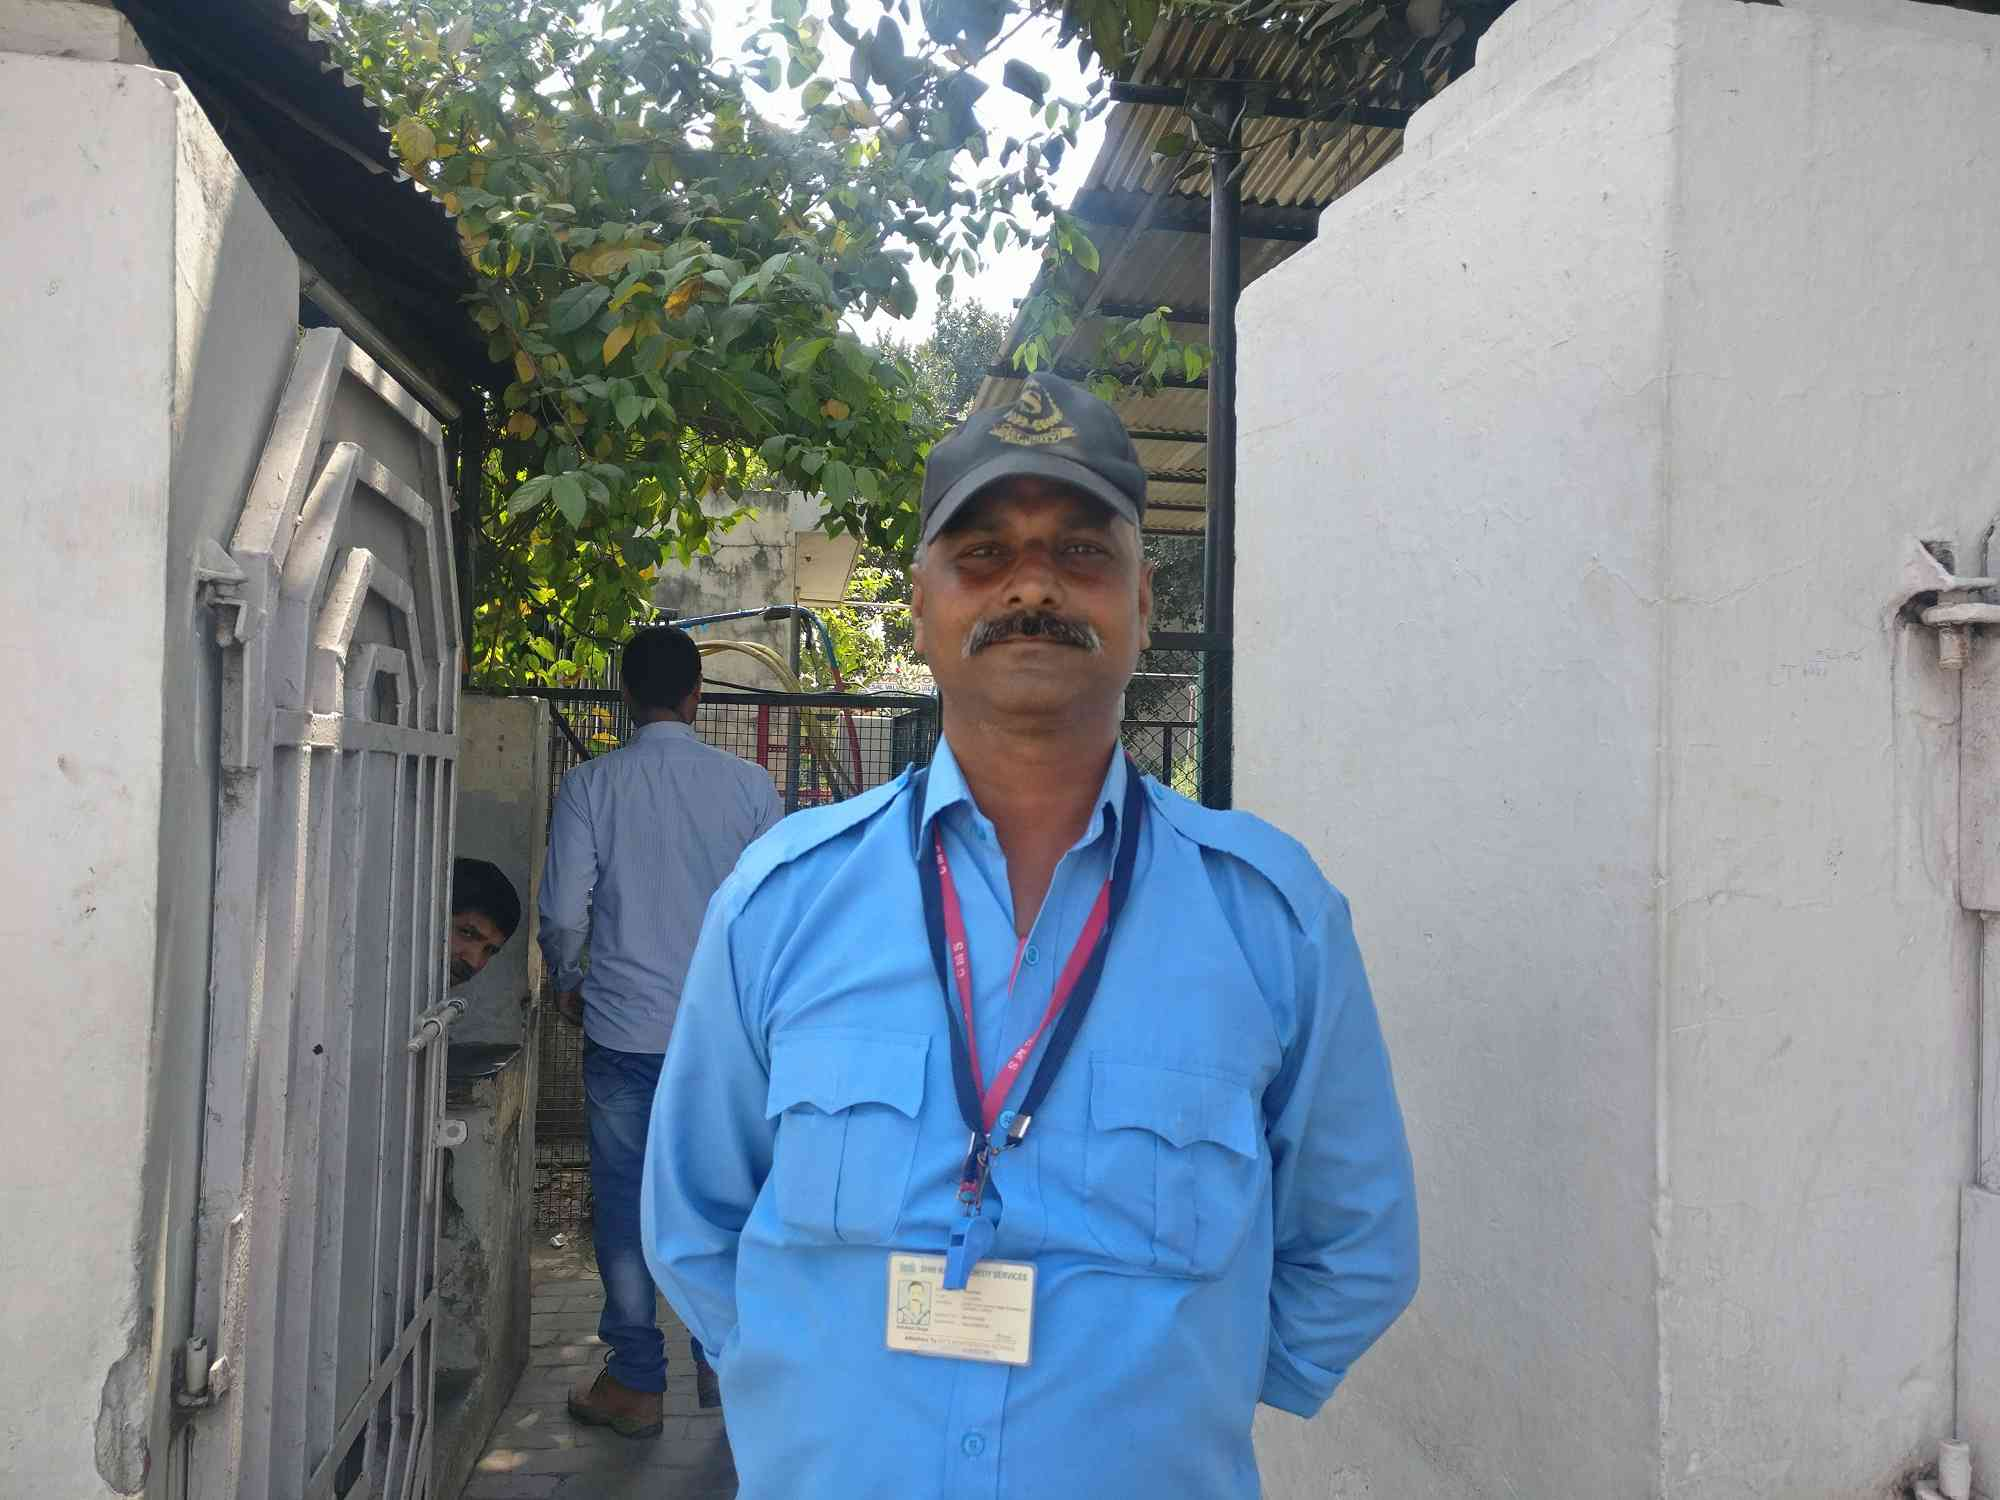 Akhilesh Singh works as a security guard at a Lucknow school. (Photo credit: Priyali Prakash).